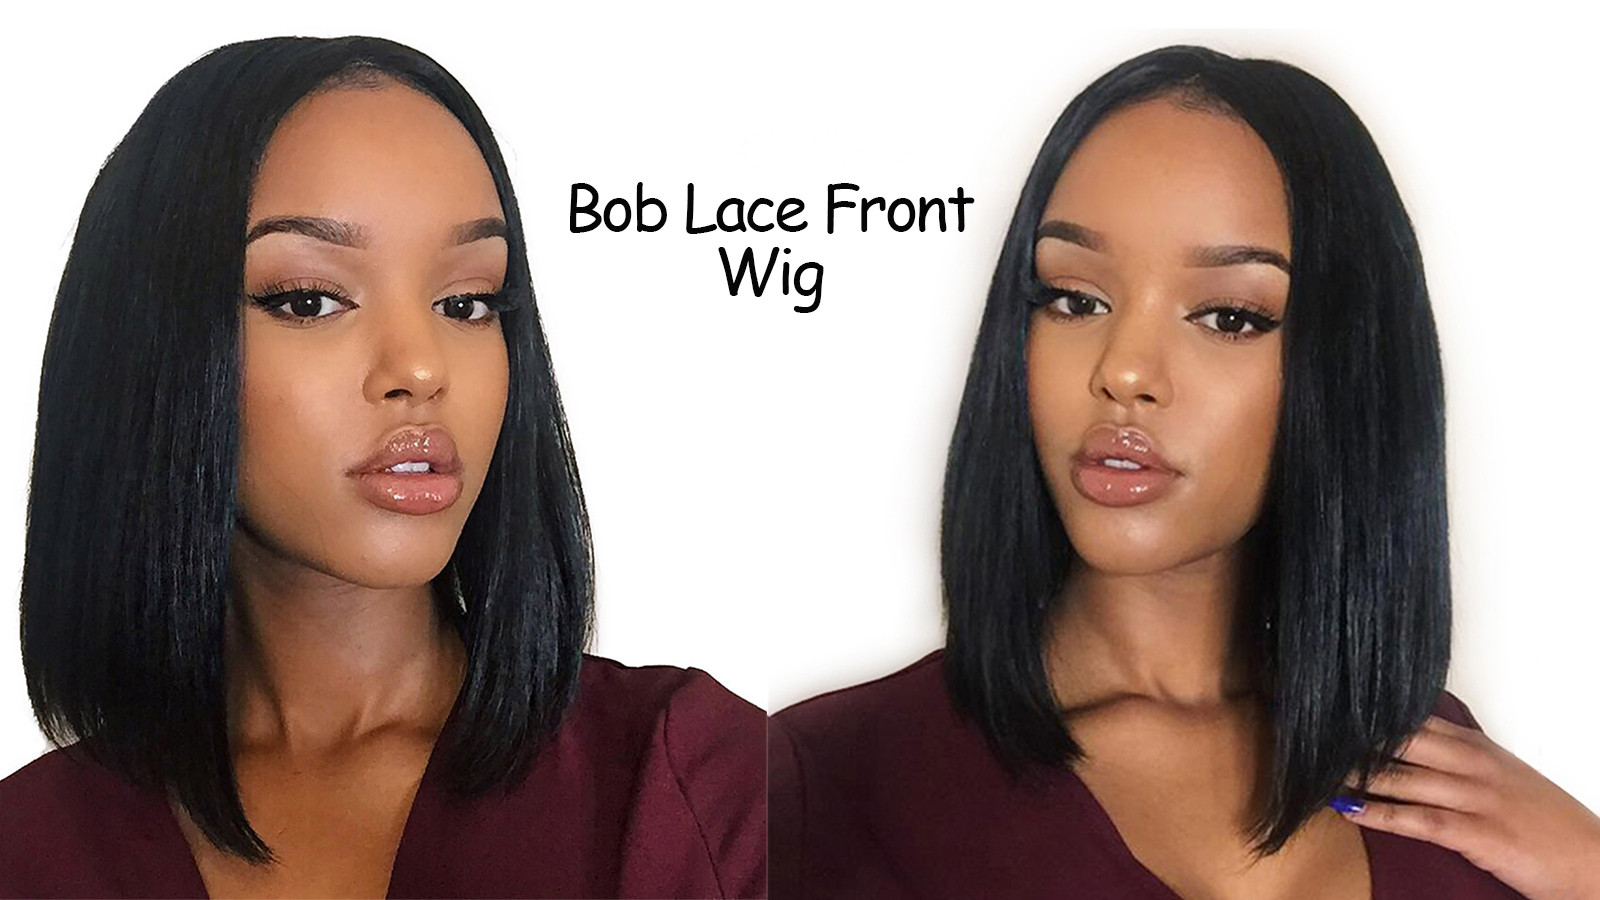 SUMMER CLASSIC HAIRSTYLE - BOB LACE WIGS